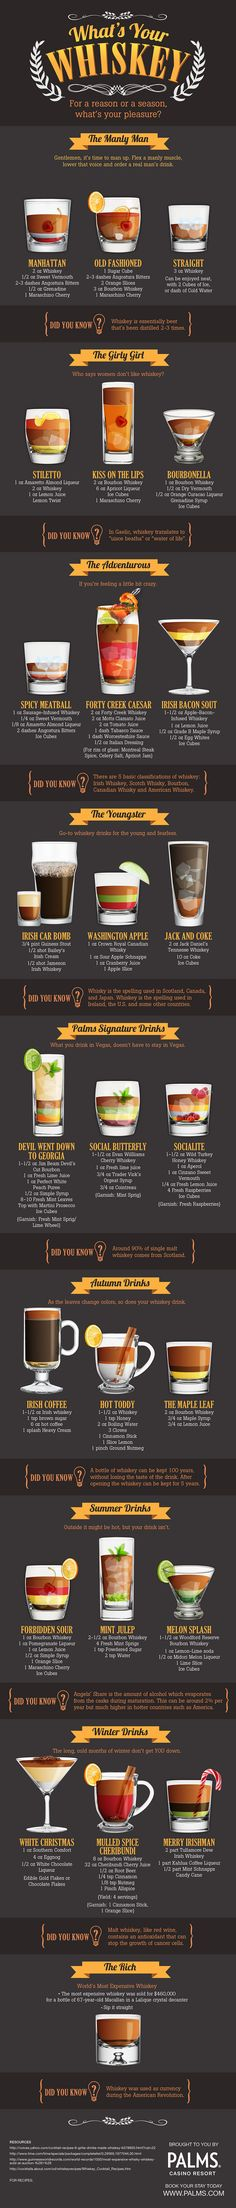 Treat yourself to some snacks! http://amzn.to/2oEqnkm What's your #whiskey? A handy #infographic.